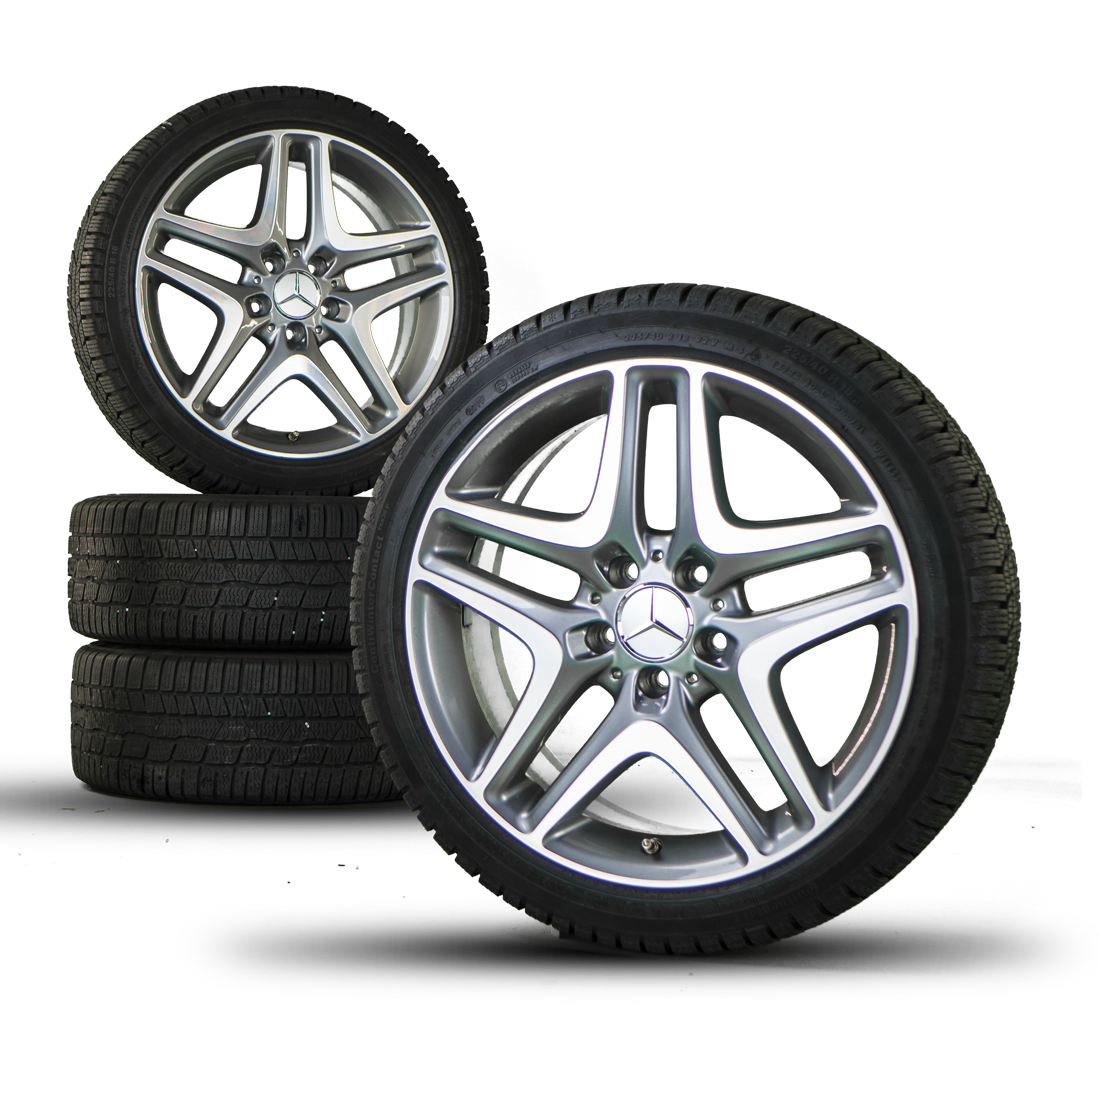 Mercedes benz 18 inch rims slk slc r172 alloy wheels winter for Mercedes benz tyres